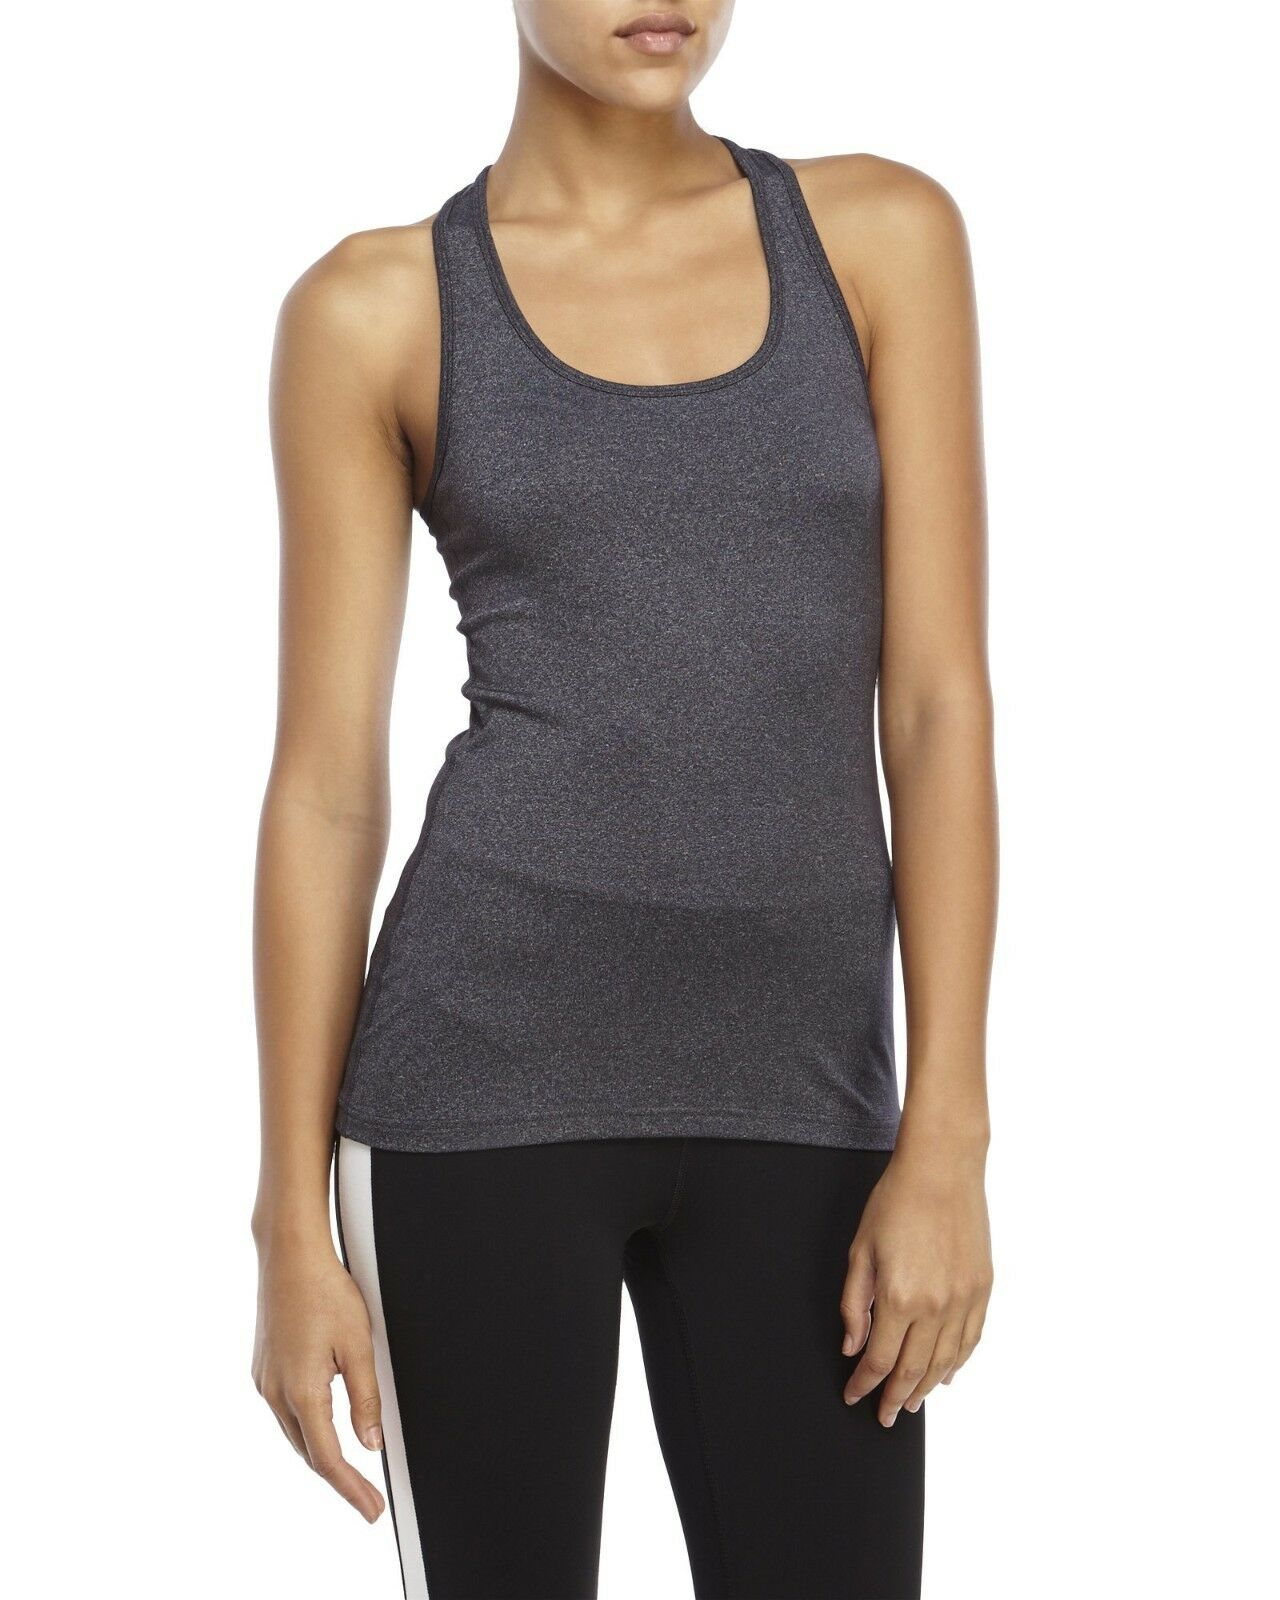 90 DEGREE BY REFLEX Women's Dark Gray Tank Top. Size L. $44.